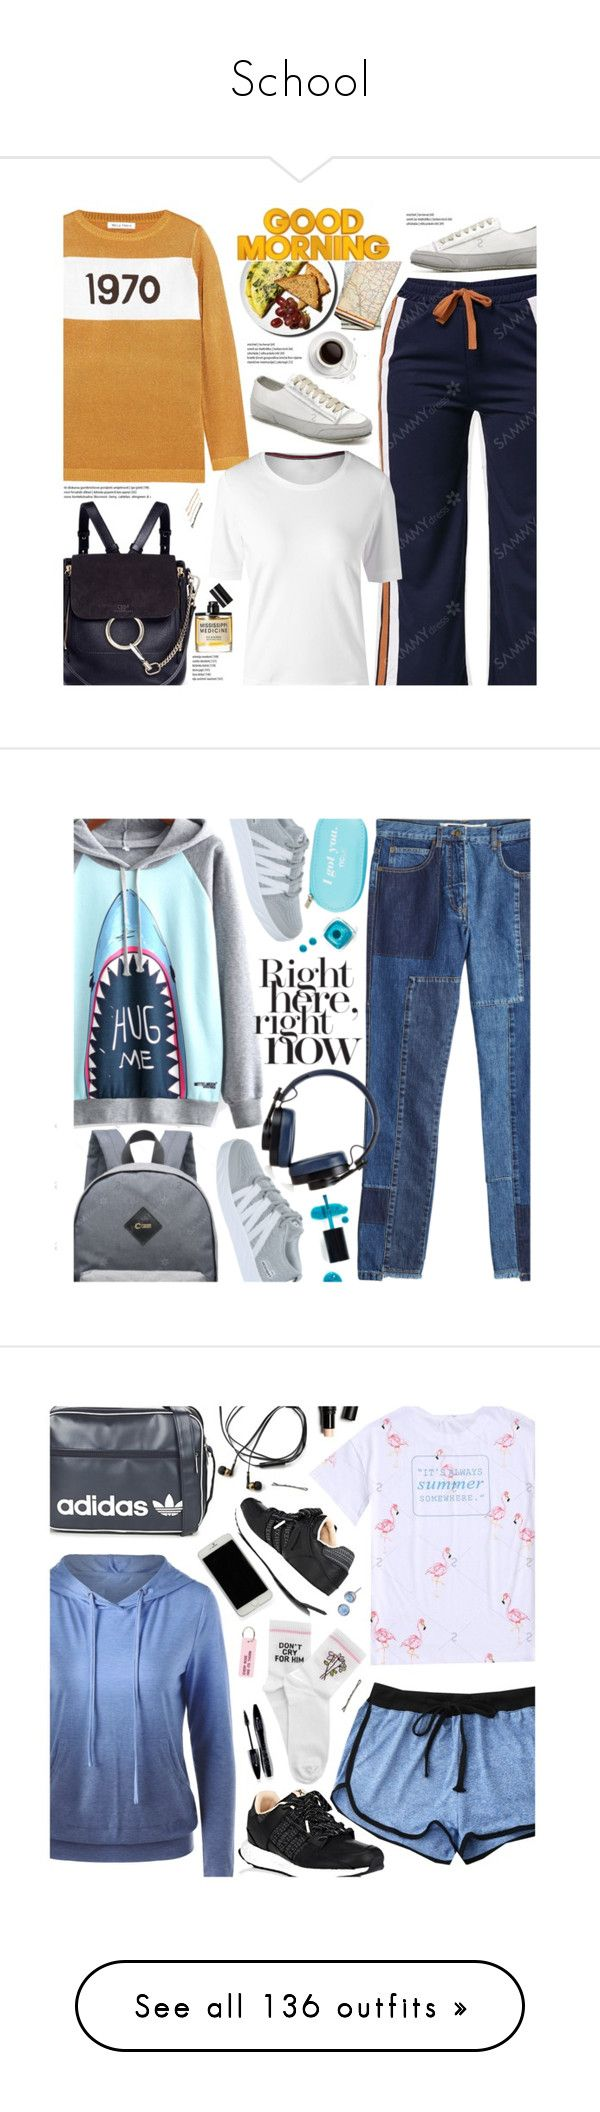 """School"" by beebeely-look ❤ liked on Polyvore featuring Bella Freud, D.S. & DURGA, Chloé, Kitsch, BackToSchool, casual, casualoutfit, sammydress, WardrobeStaples and McQ by Alexander McQueen"